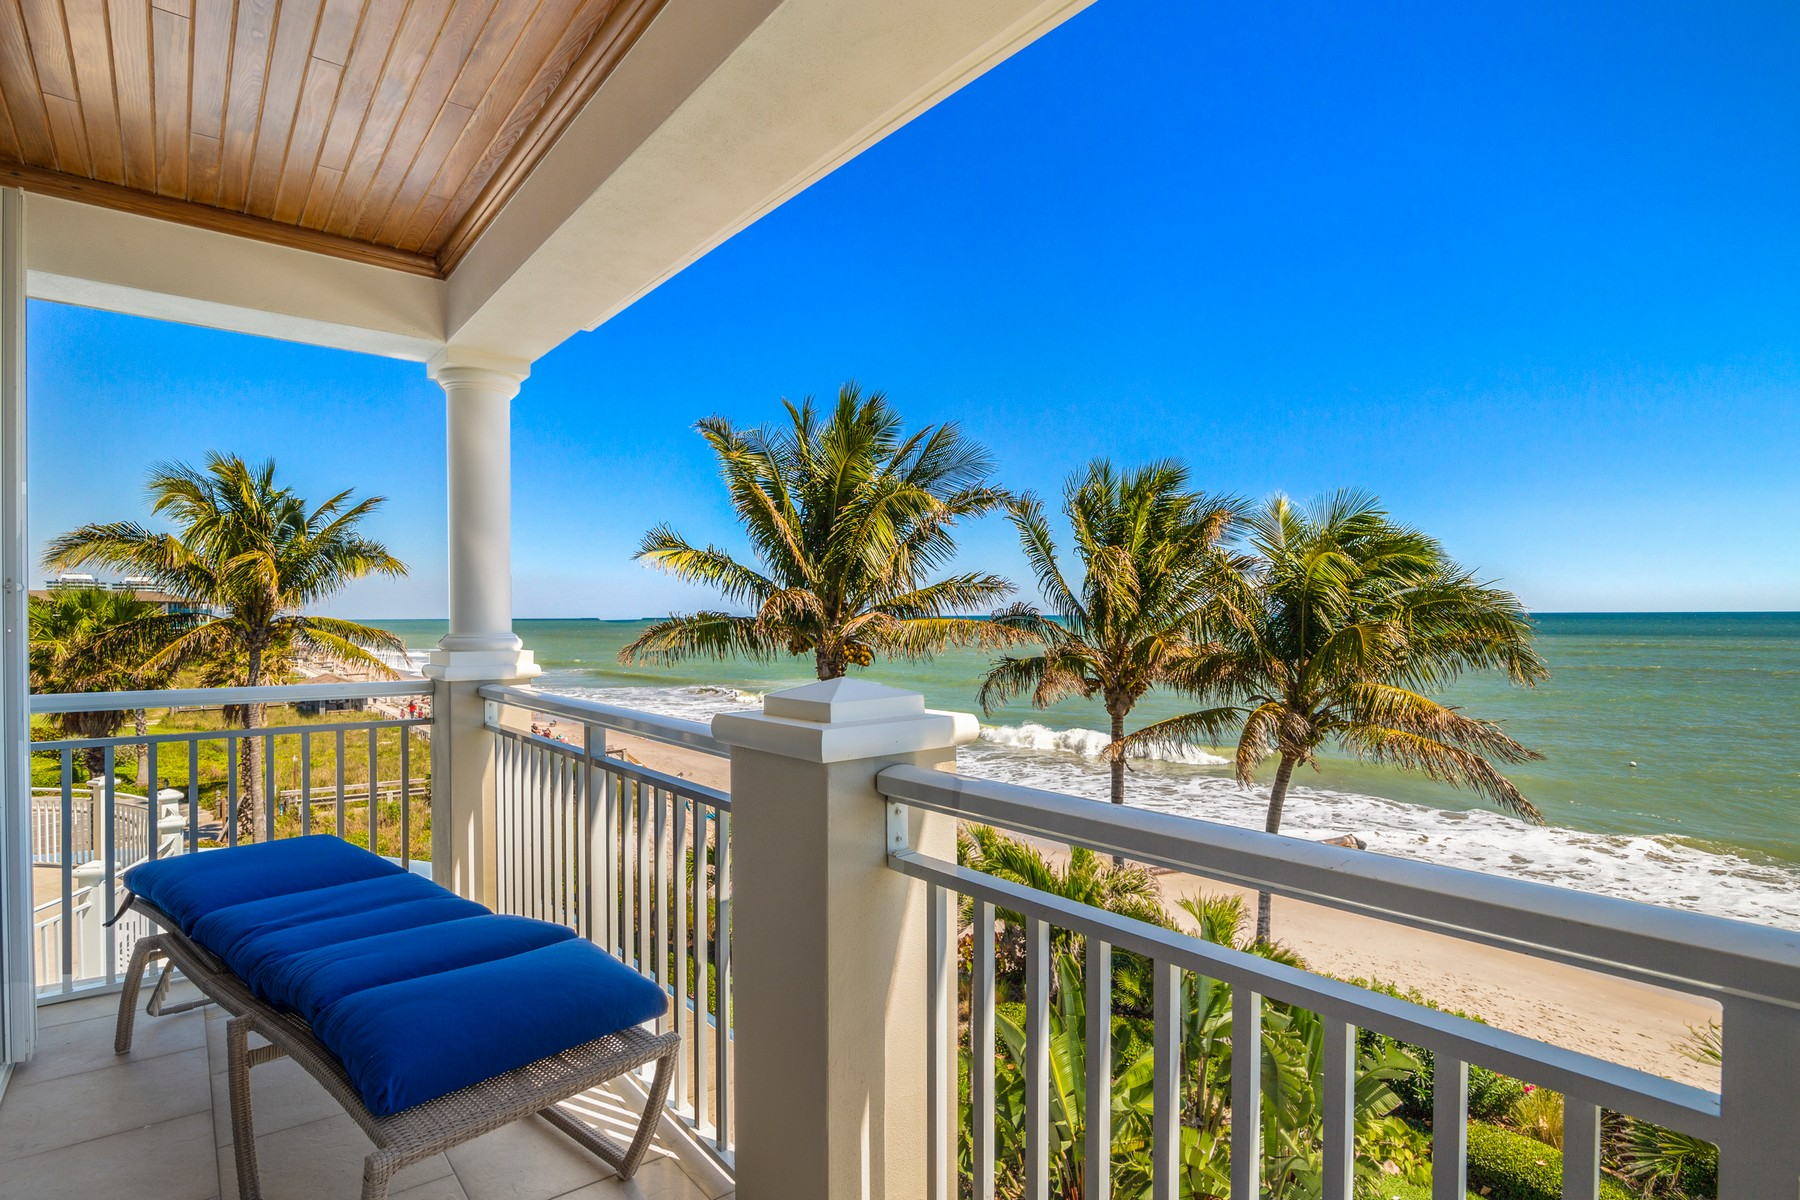 Property for Sale at Elegant Oceanfront Townhome Right in Town 1010 Easter Lily Ln #105 Vero Beach, Florida 32963 United States